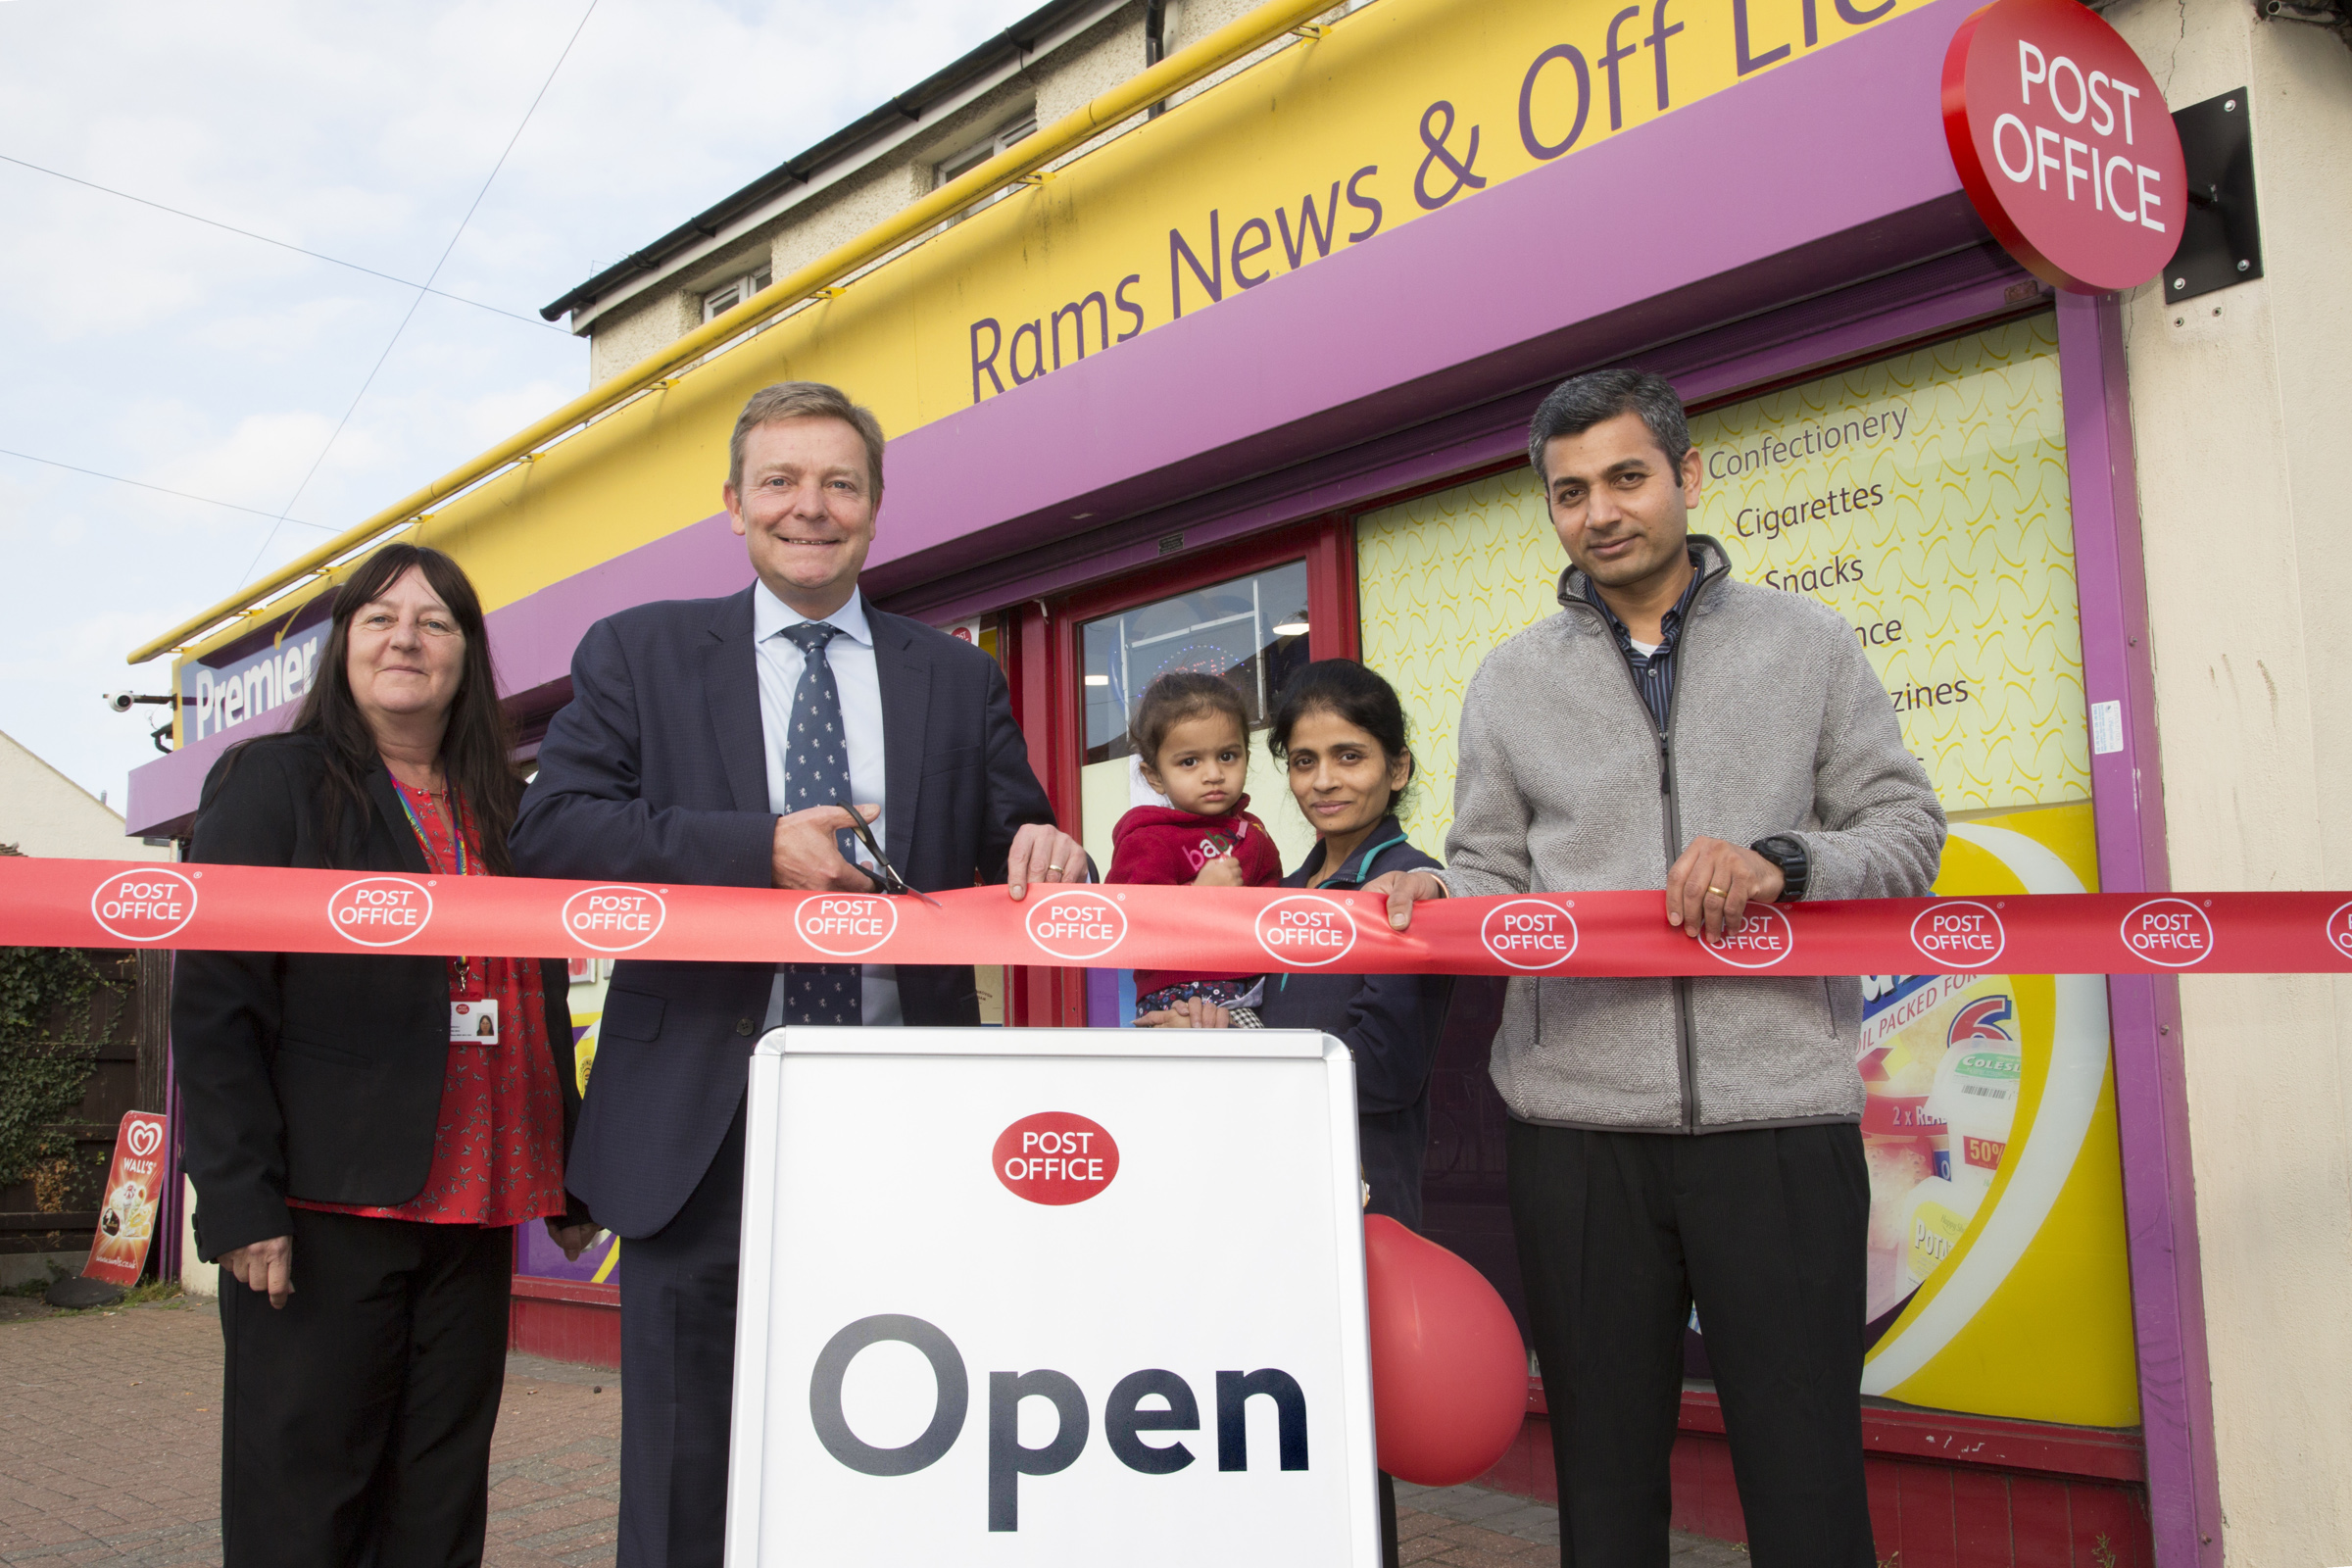 """Craig 'cutting the ribbon"""" at Newington Post Office in Ramsgate."""